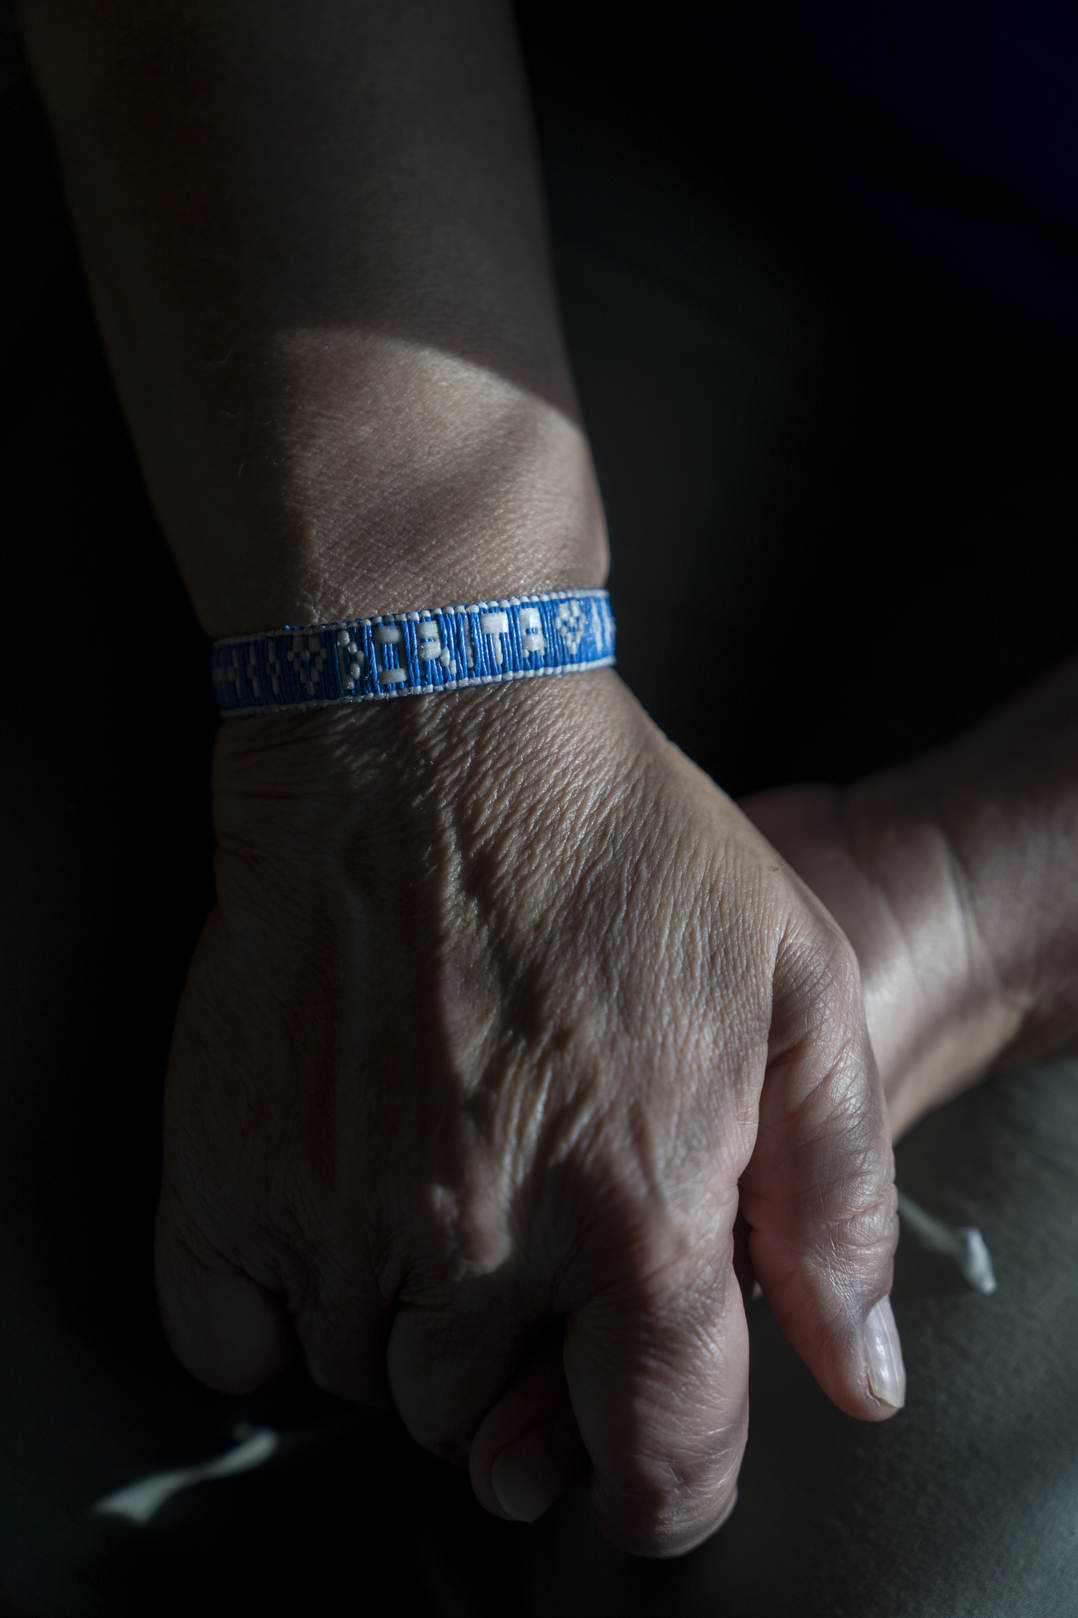 TUCSON, AZ - MARCH 13, 2020:Detail of a bracelet that says 'DORITA' that an asylum seeker in an ICE detention facility made out of plastic bags for Dora Rodriguez. In 1980 19-year-old Dora Rodriguez, from El Salvador, made the difficult journey of crossing into the US near Lukeville, AZ on foot. Of the 26 individuals she crossed the Sonoran desert with 13 died in the gruelling heat, one of the pre-eminent events that led to the Sanctuary Movement. Dora eventually naturalised in the US and started an advocacy group, Salvavision Rescue Arizona, to support asylum-seekers. On a weekly basis Dora visits asylum seekers in detention centres, writes them letters, fundraises and brings donated supplies to the migrant camps on the Mexican side of the US - Mexico border. Photo by Kitra Cahana/MAPS for The Intercept